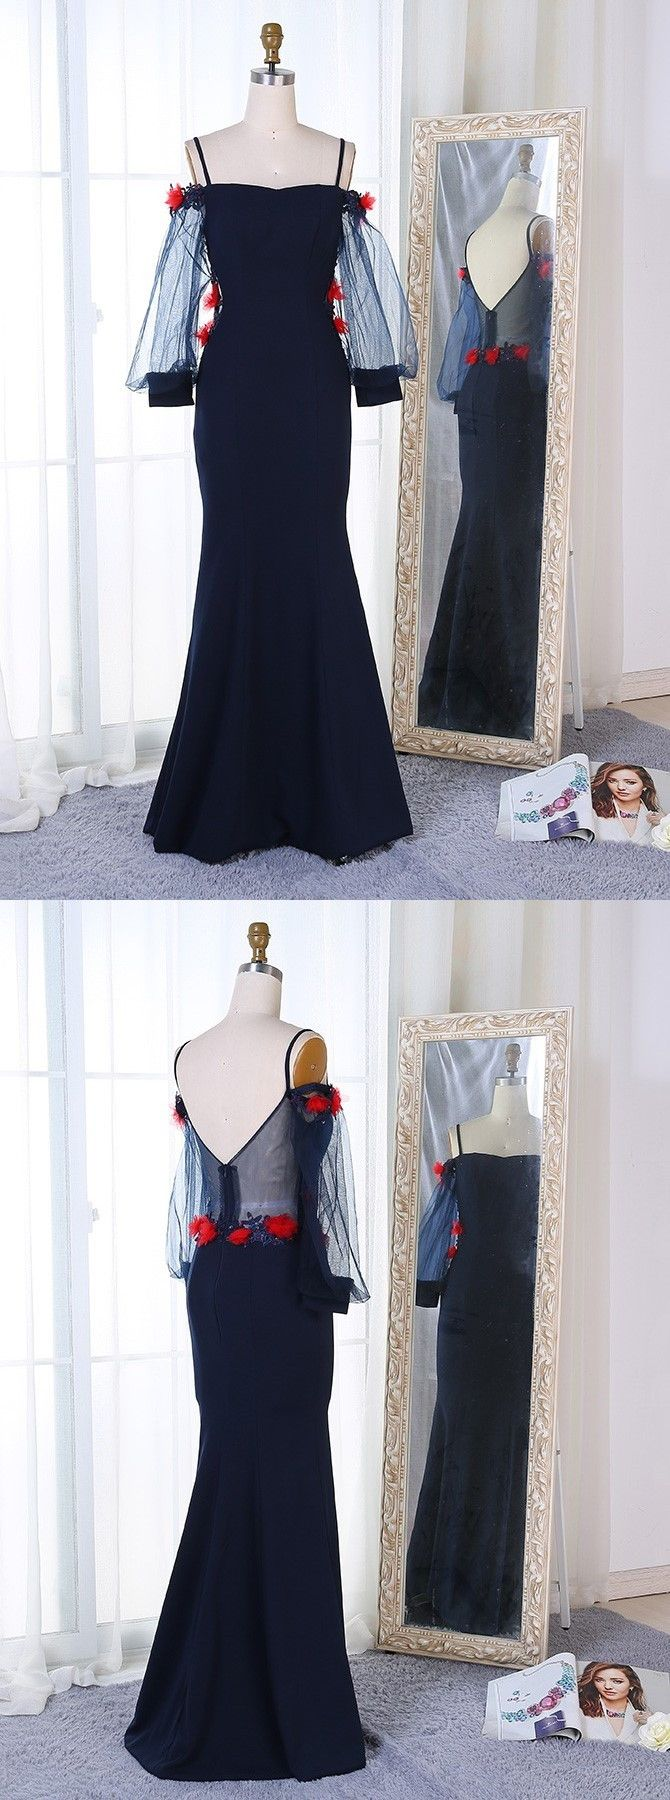 Mermaid spaghetti straps navy blue prom dress with flowers sleeves